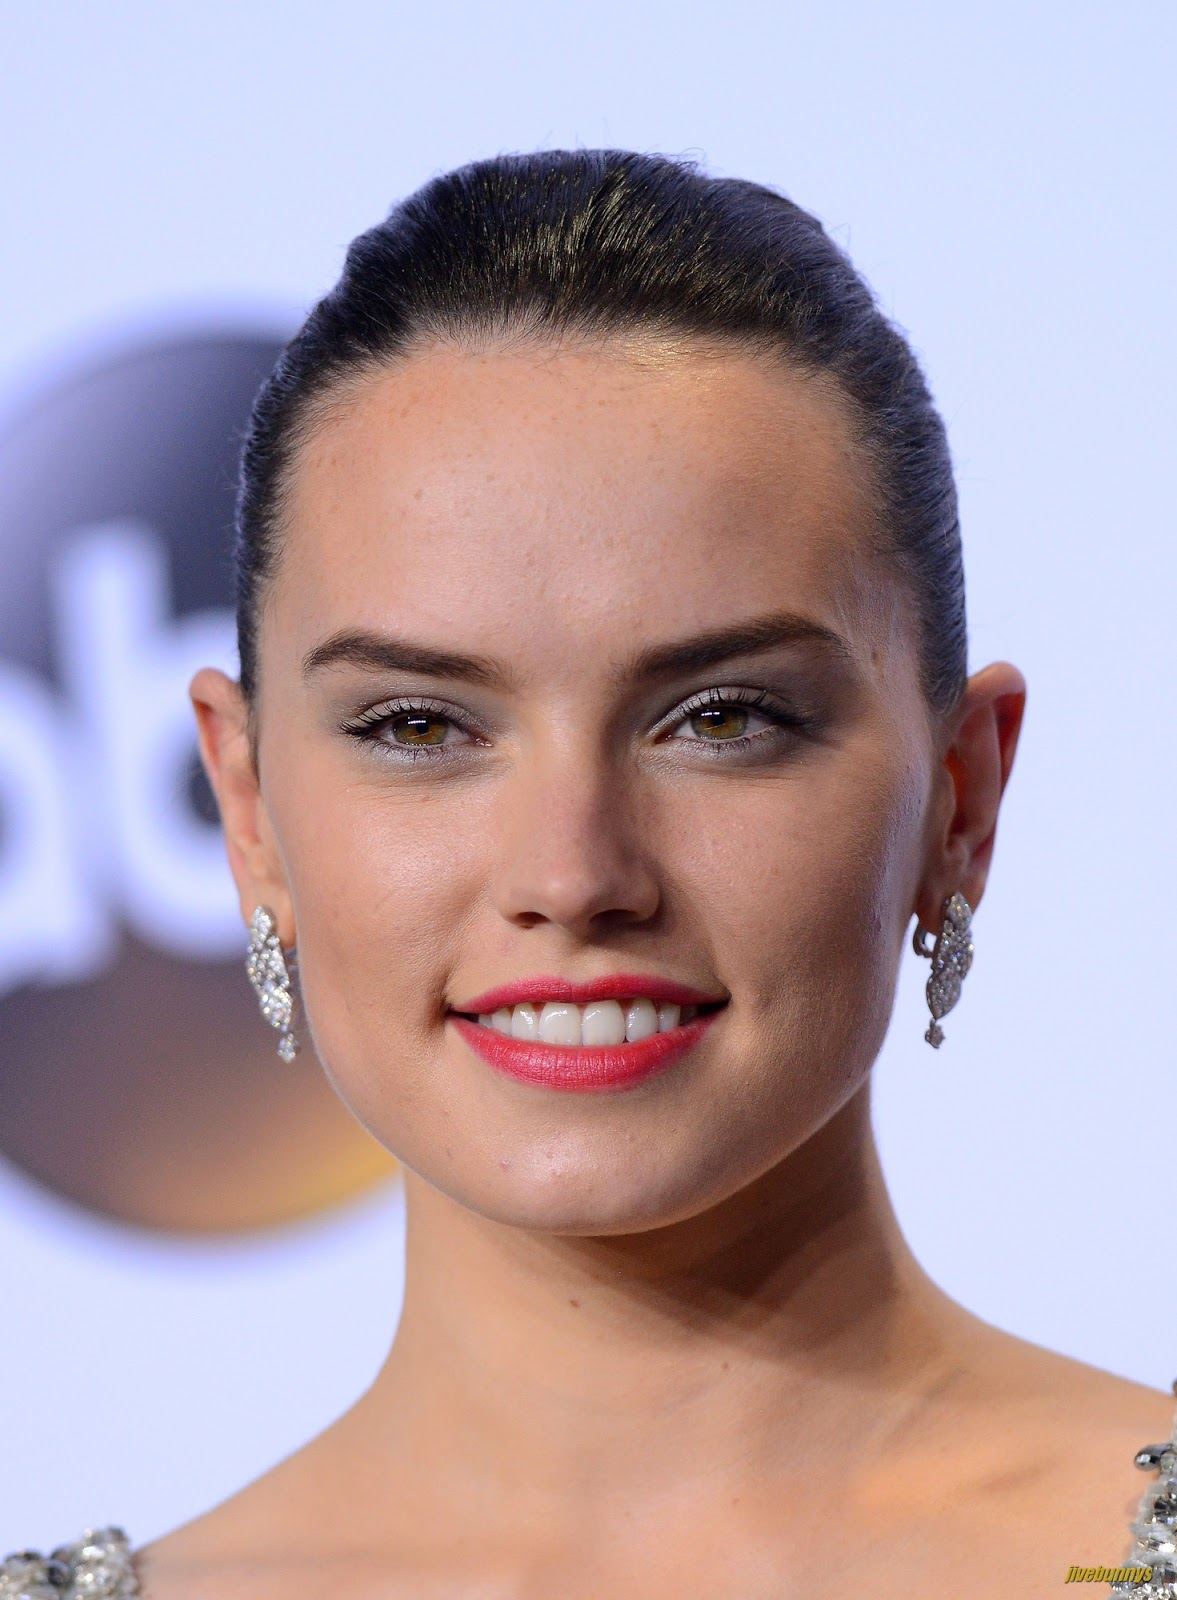 Daisy Ridley - Star Wars Actress Photo Gallery 1